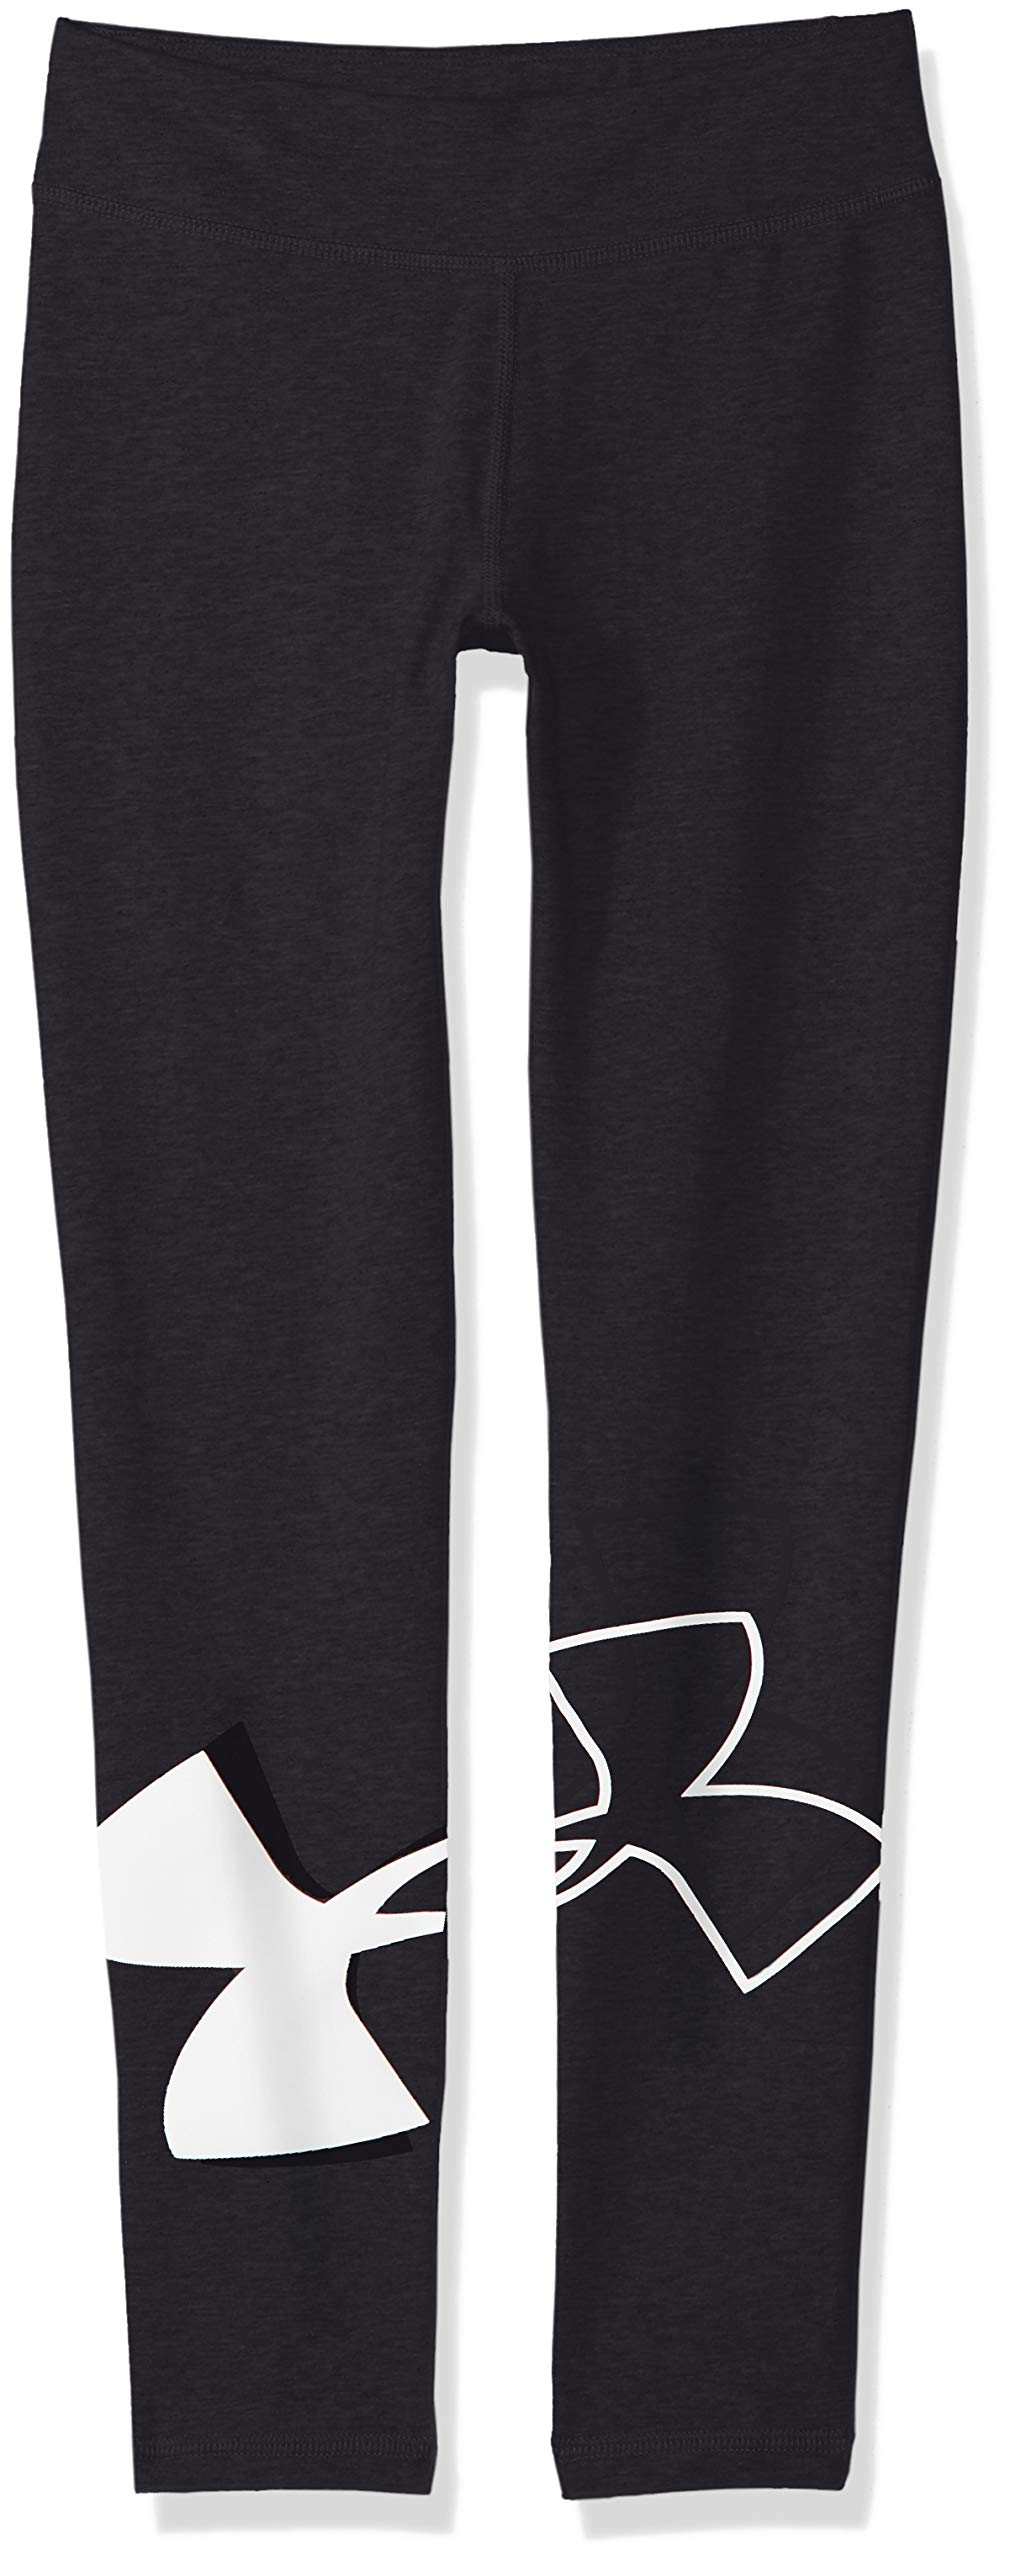 Under Armour Kids Girl's Favorite Knit Leggings (Big Kids) Black/White X-Small